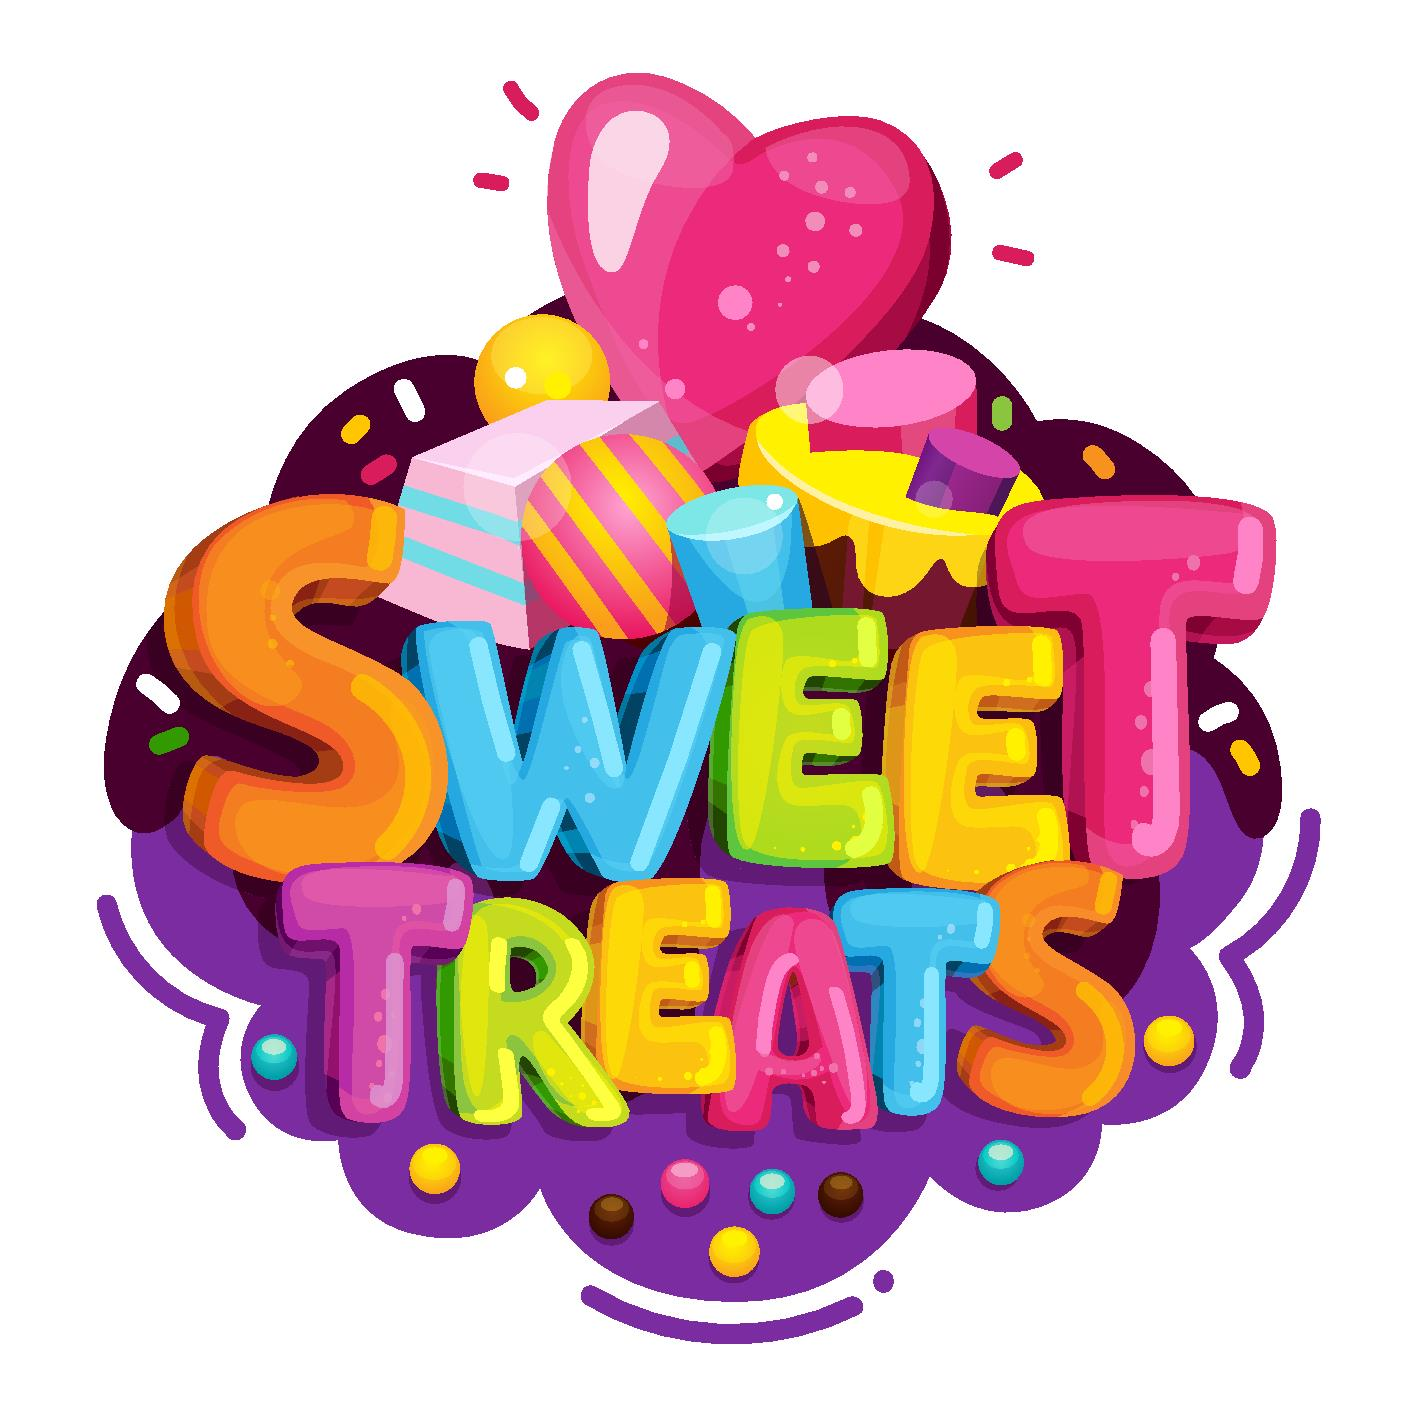 Sonoran Sweets N Treats image